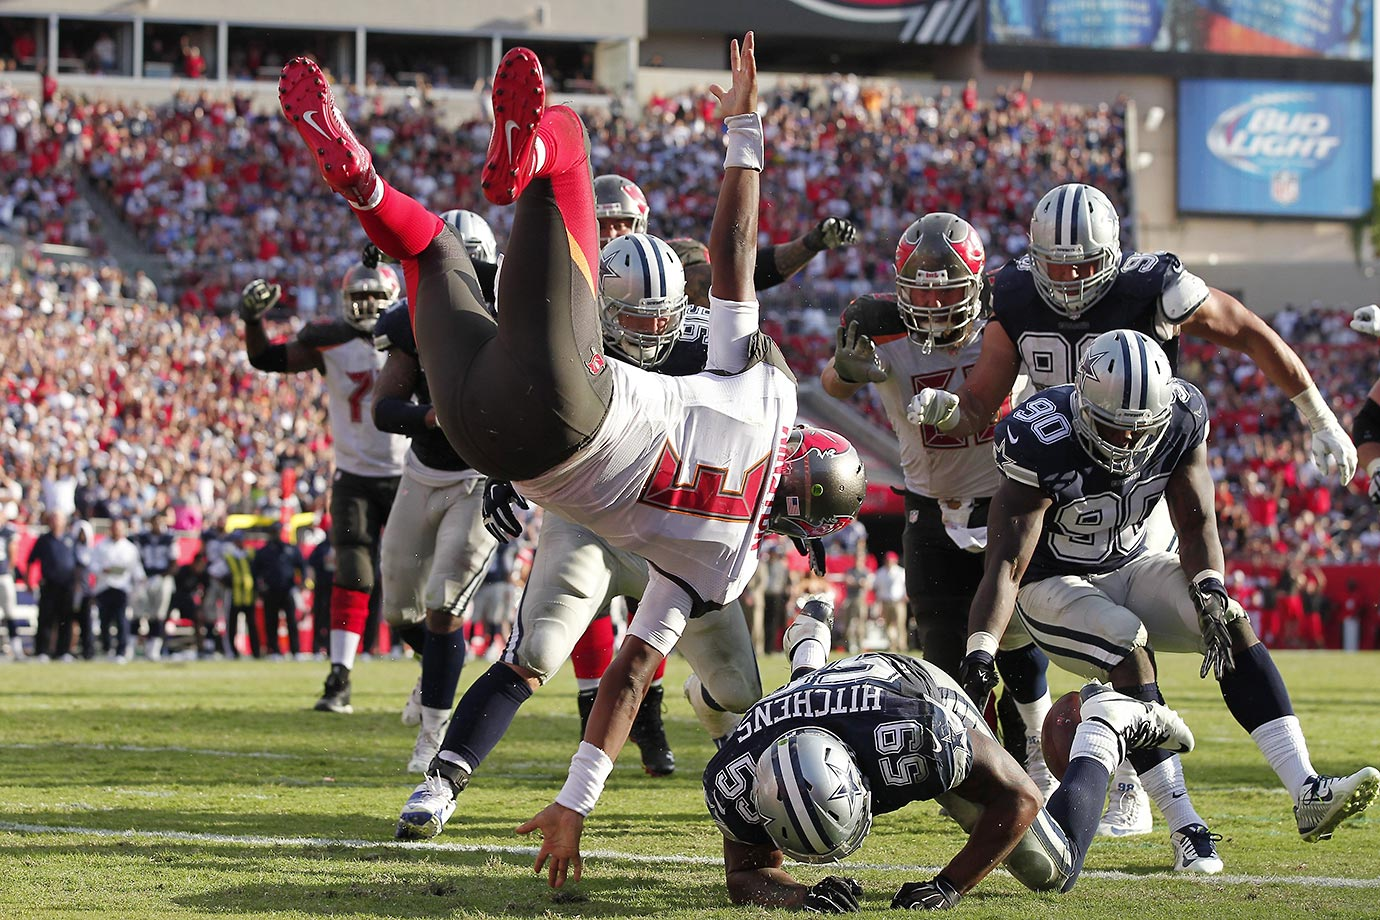 Jameis Winston of Tampa Bay loses the ball as he does a front flip when hit by Anthony Hitchens of the Dallas Cowboys. There was a penalty on the play, moving the ball to the 1.